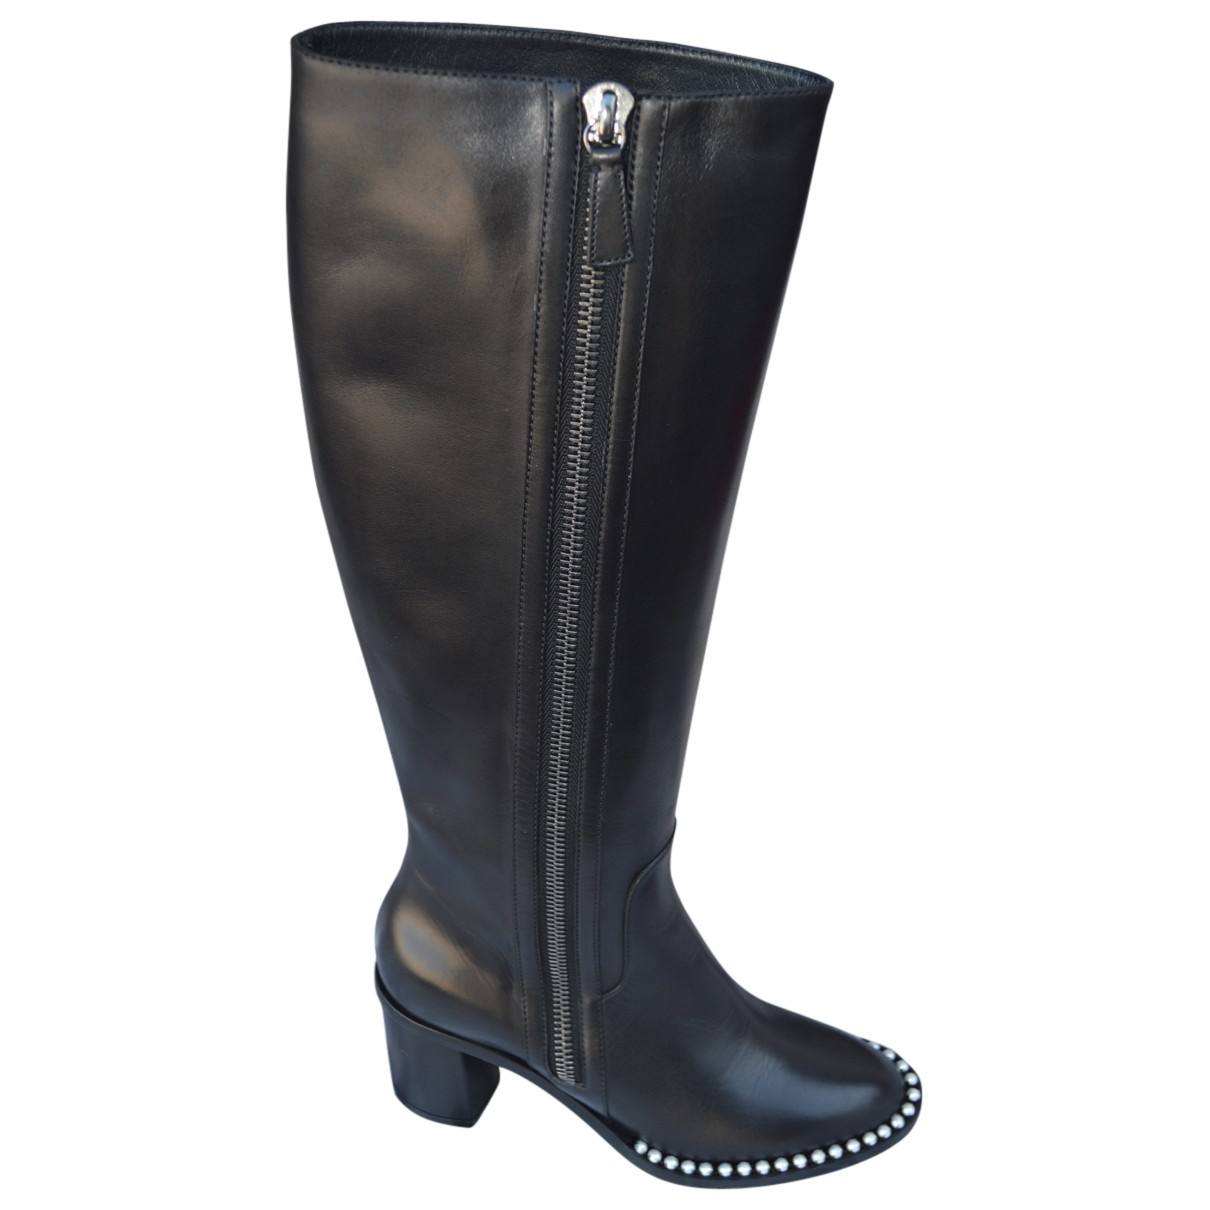 Casadei N Black Leather Boots for Women 8 US